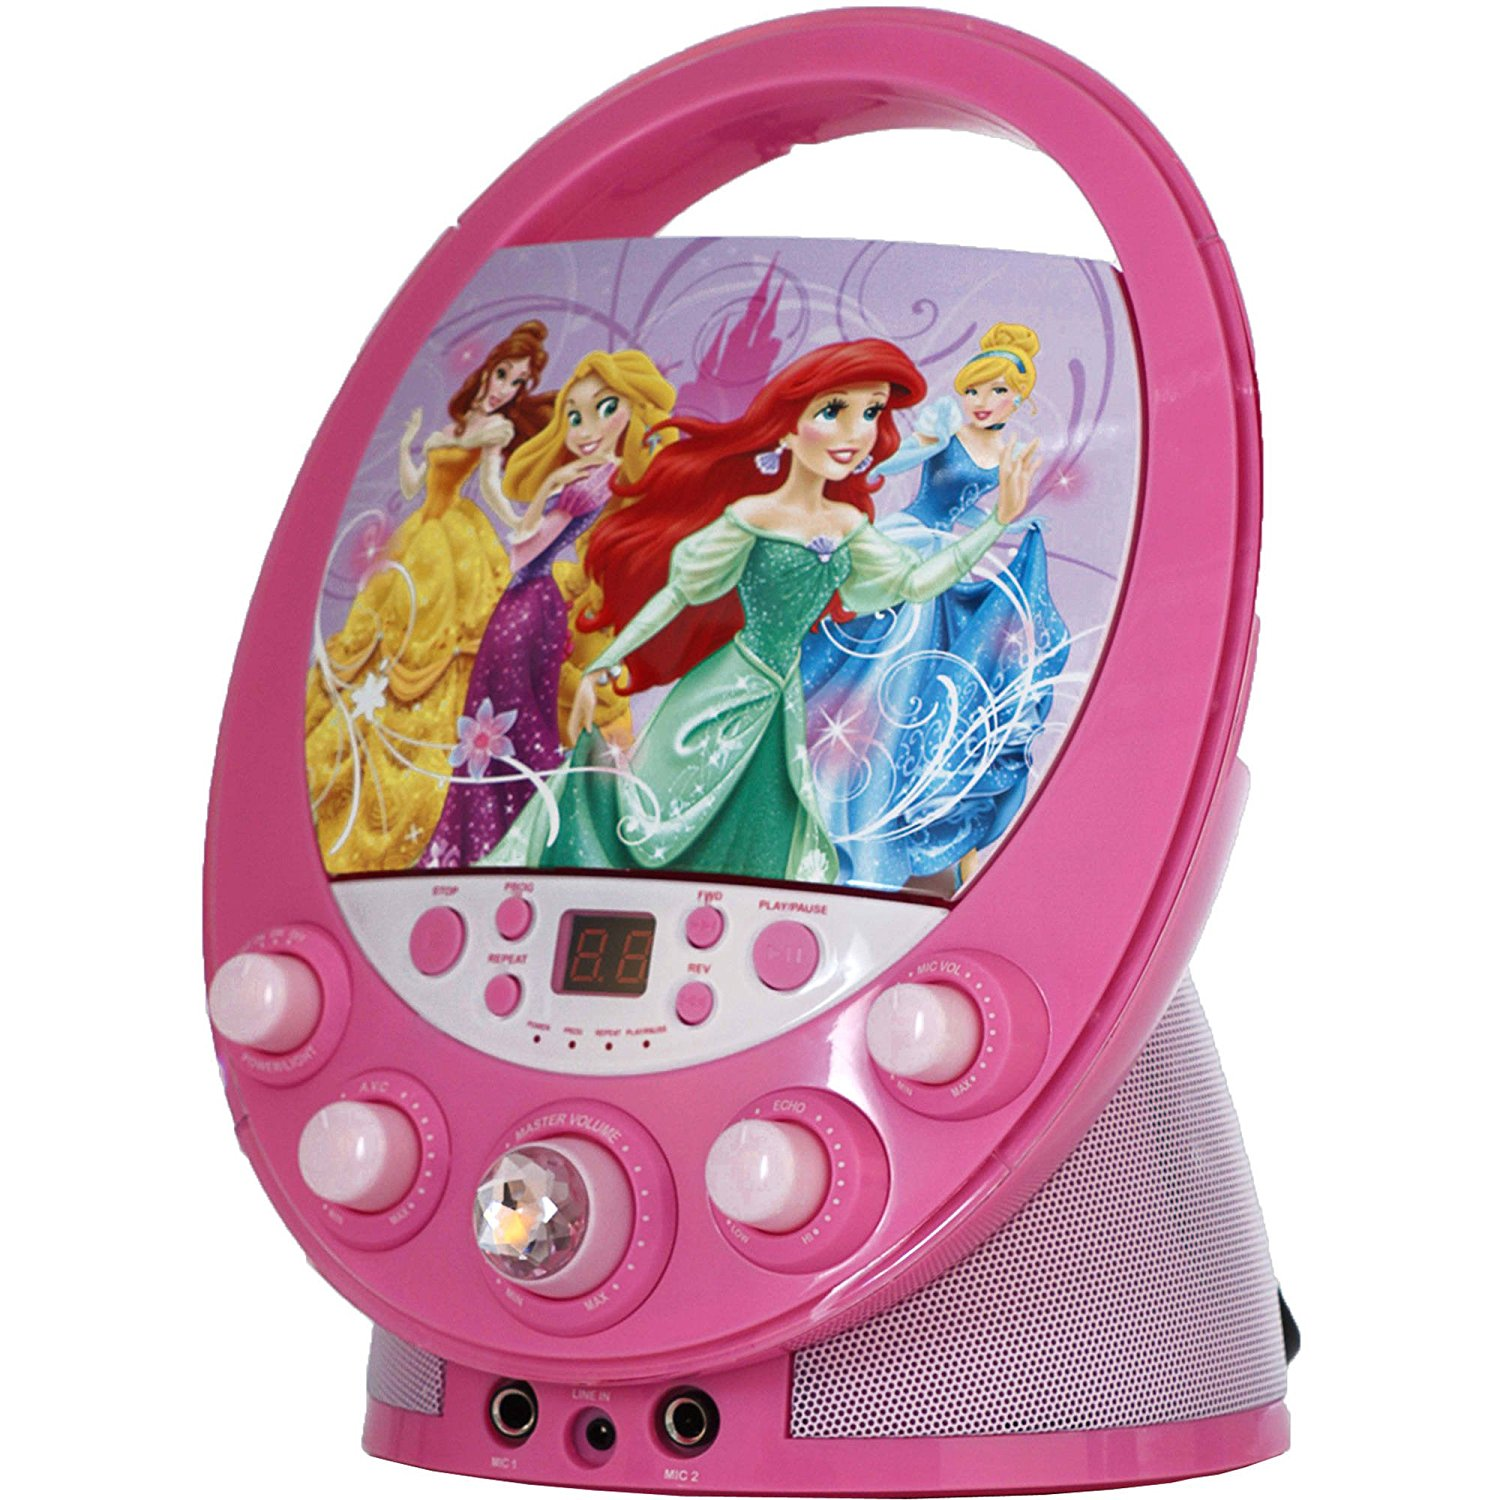 Disney Princess 66205-WINT Disney Princess Flashing Durable Colorful Beautiful Karaoke for Kids